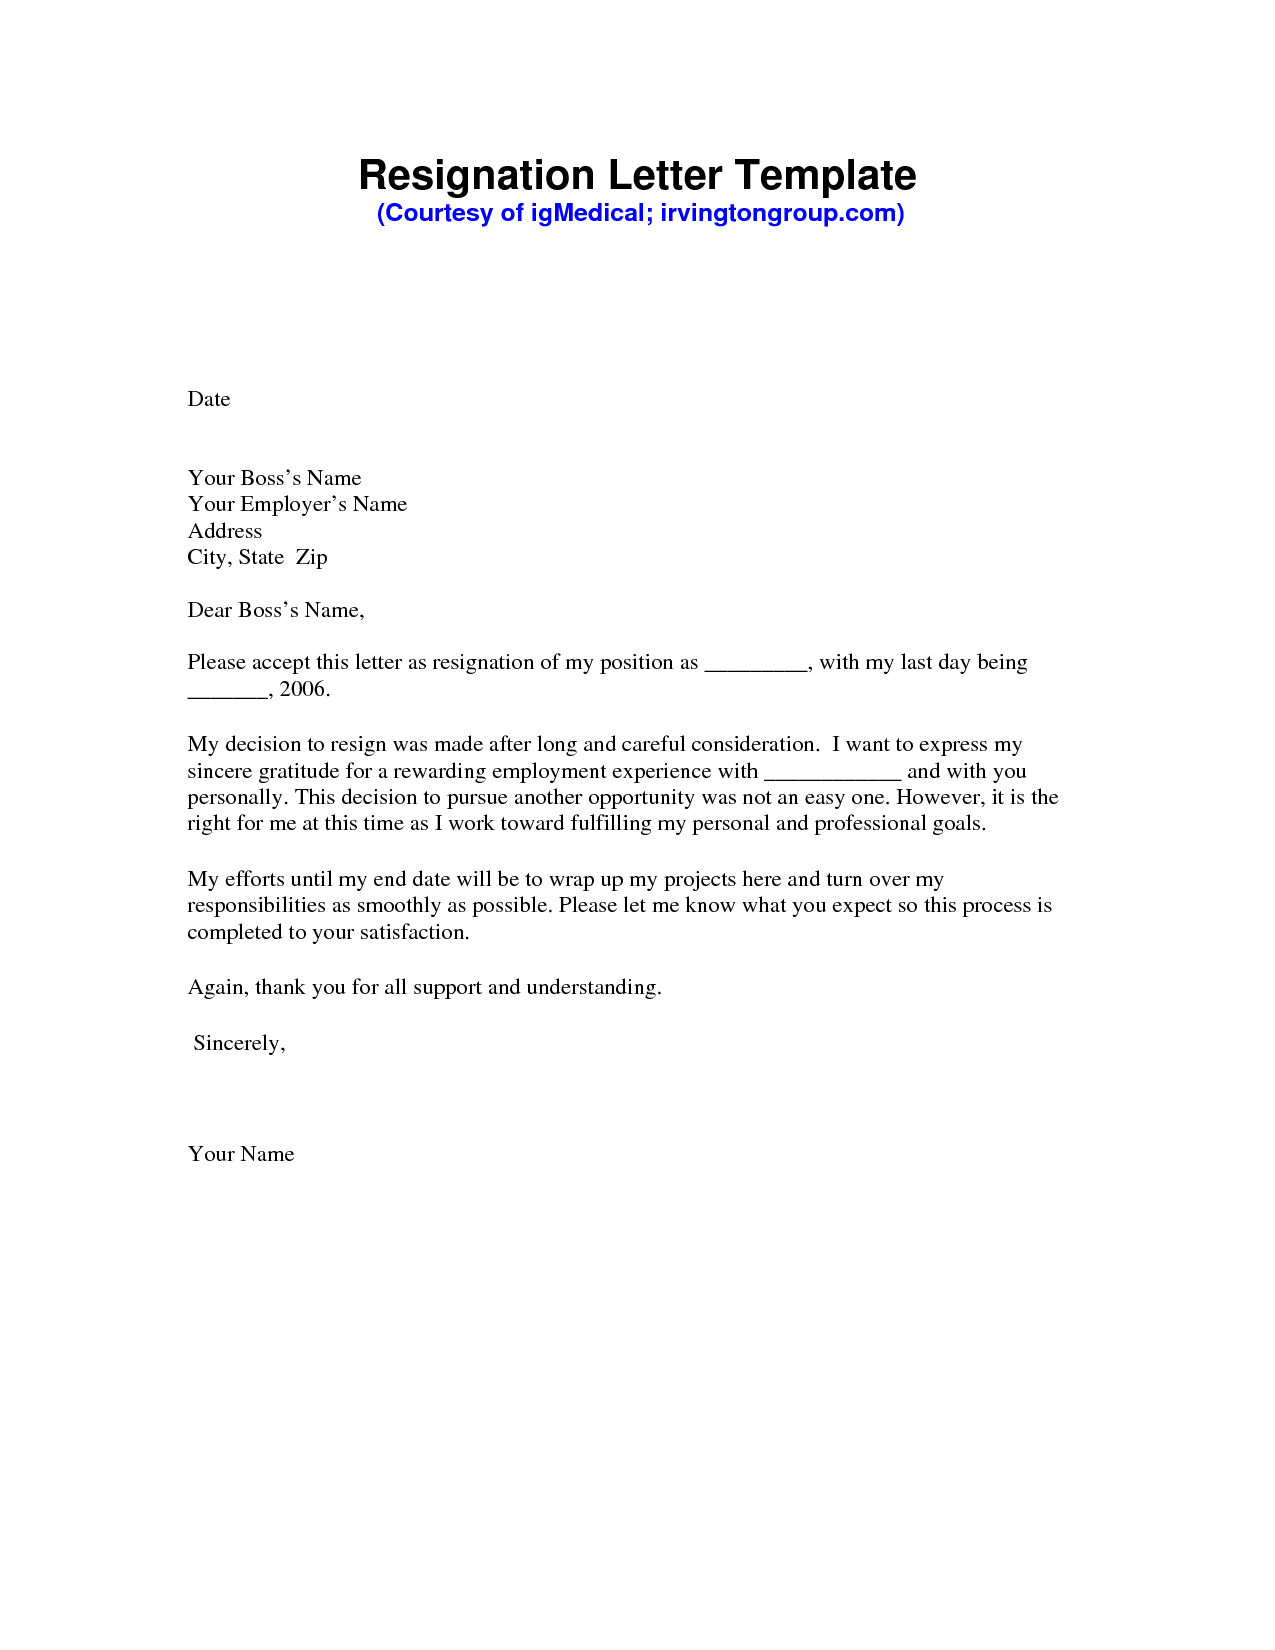 Letter Of Recommendation Template Pdf - Resignation Letter Sample Pdf Resignation Letter